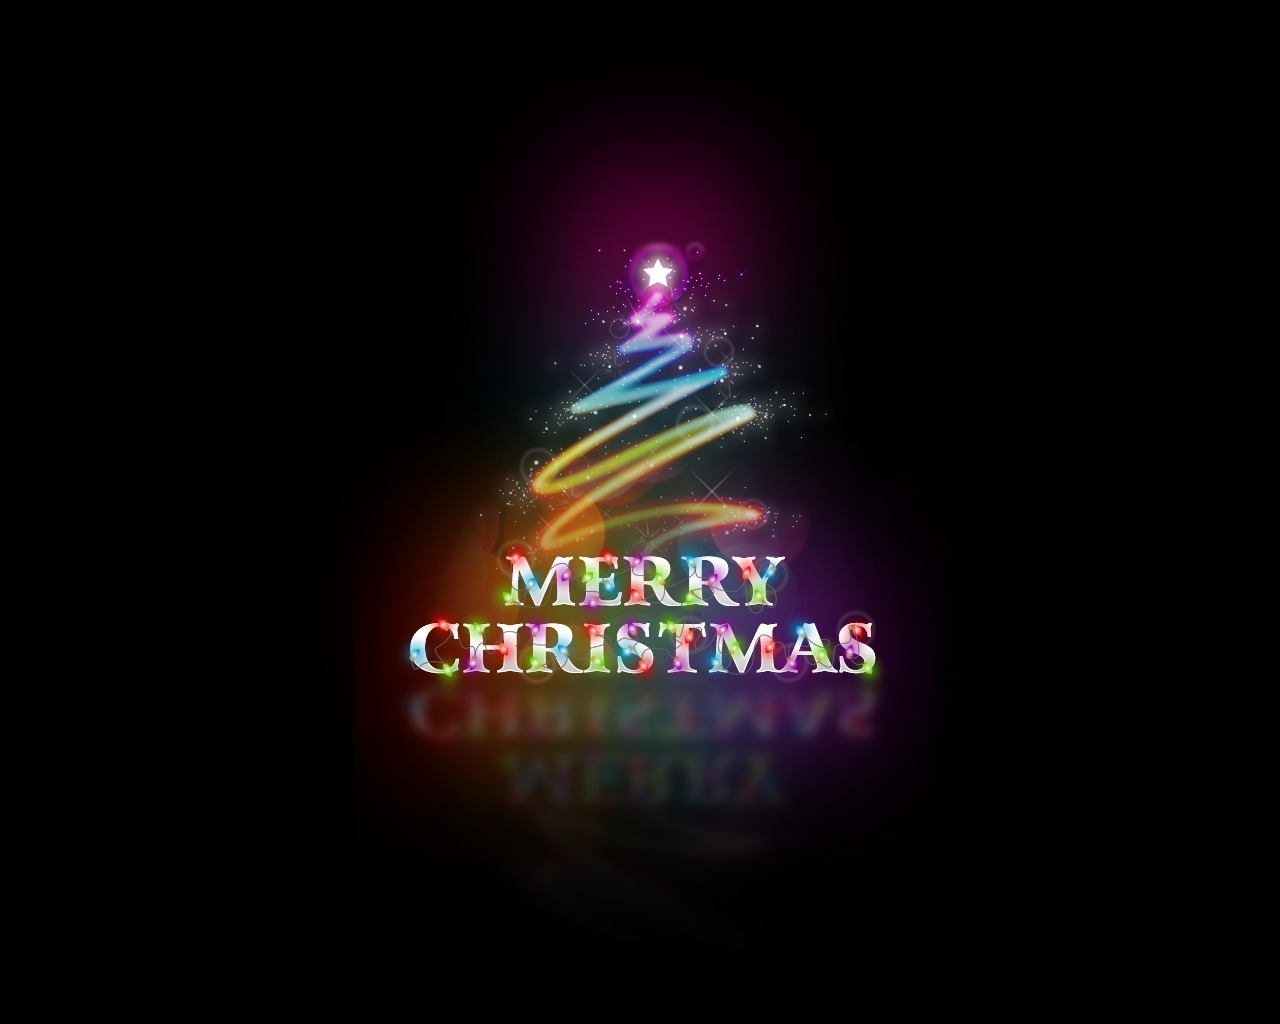 happy merry christmas free wallpaper deskto